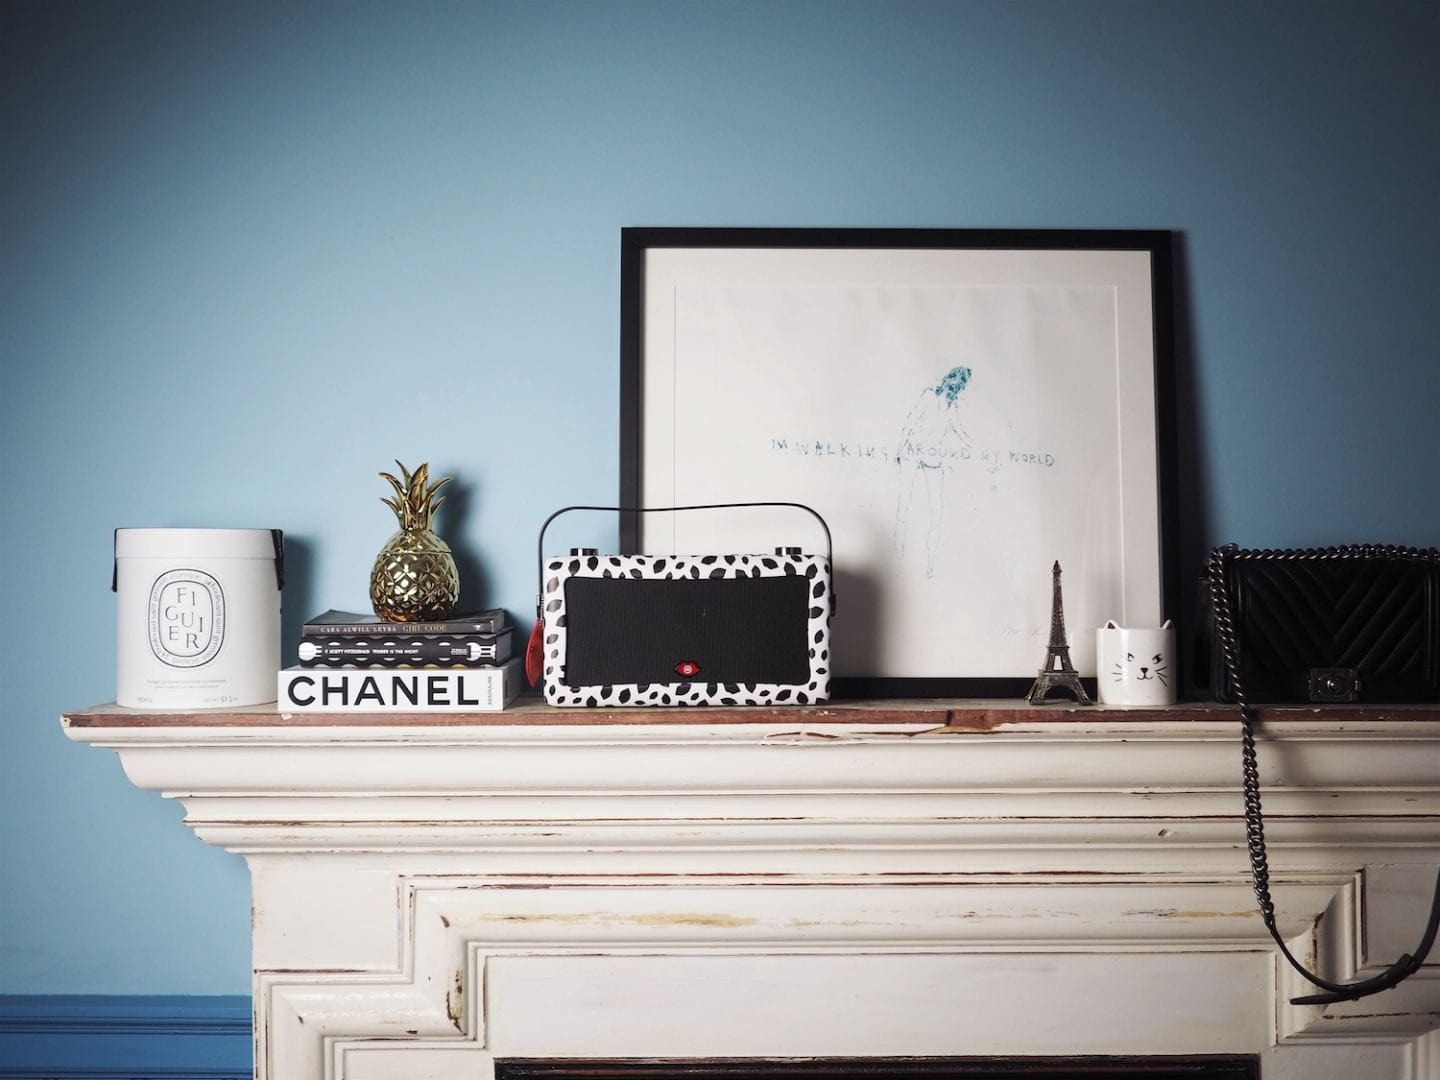 chanel boy bag black chevron vq radion fireplace